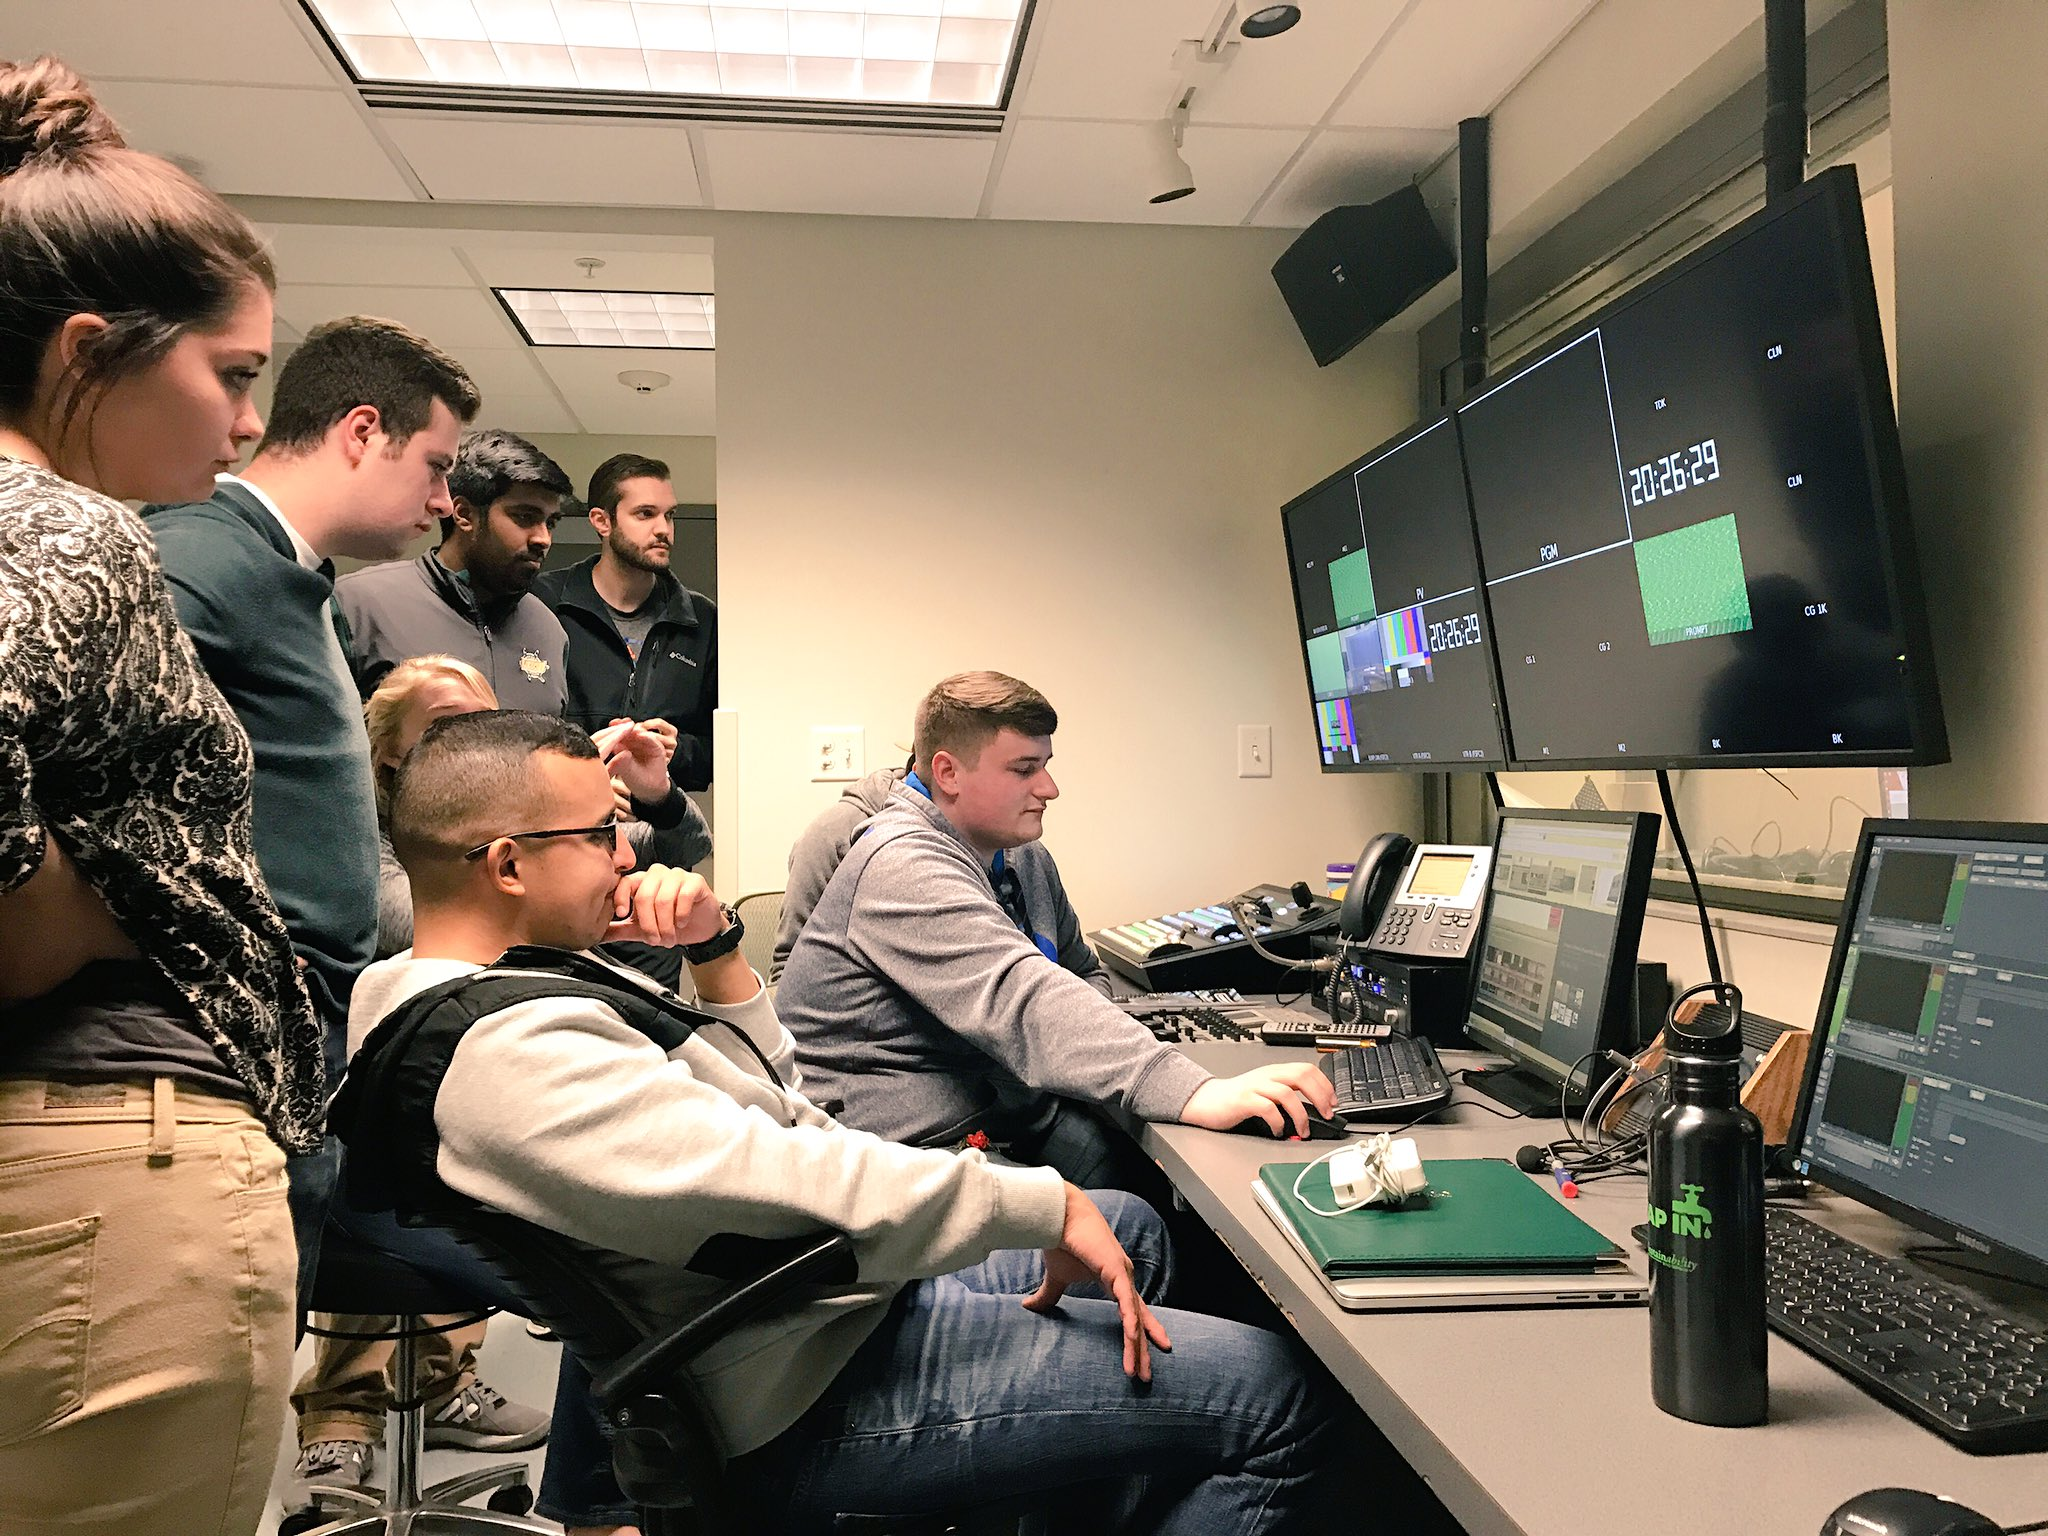 Ian Dwyer, '17 teaches members how to use the new Ross Xpression Graphics system